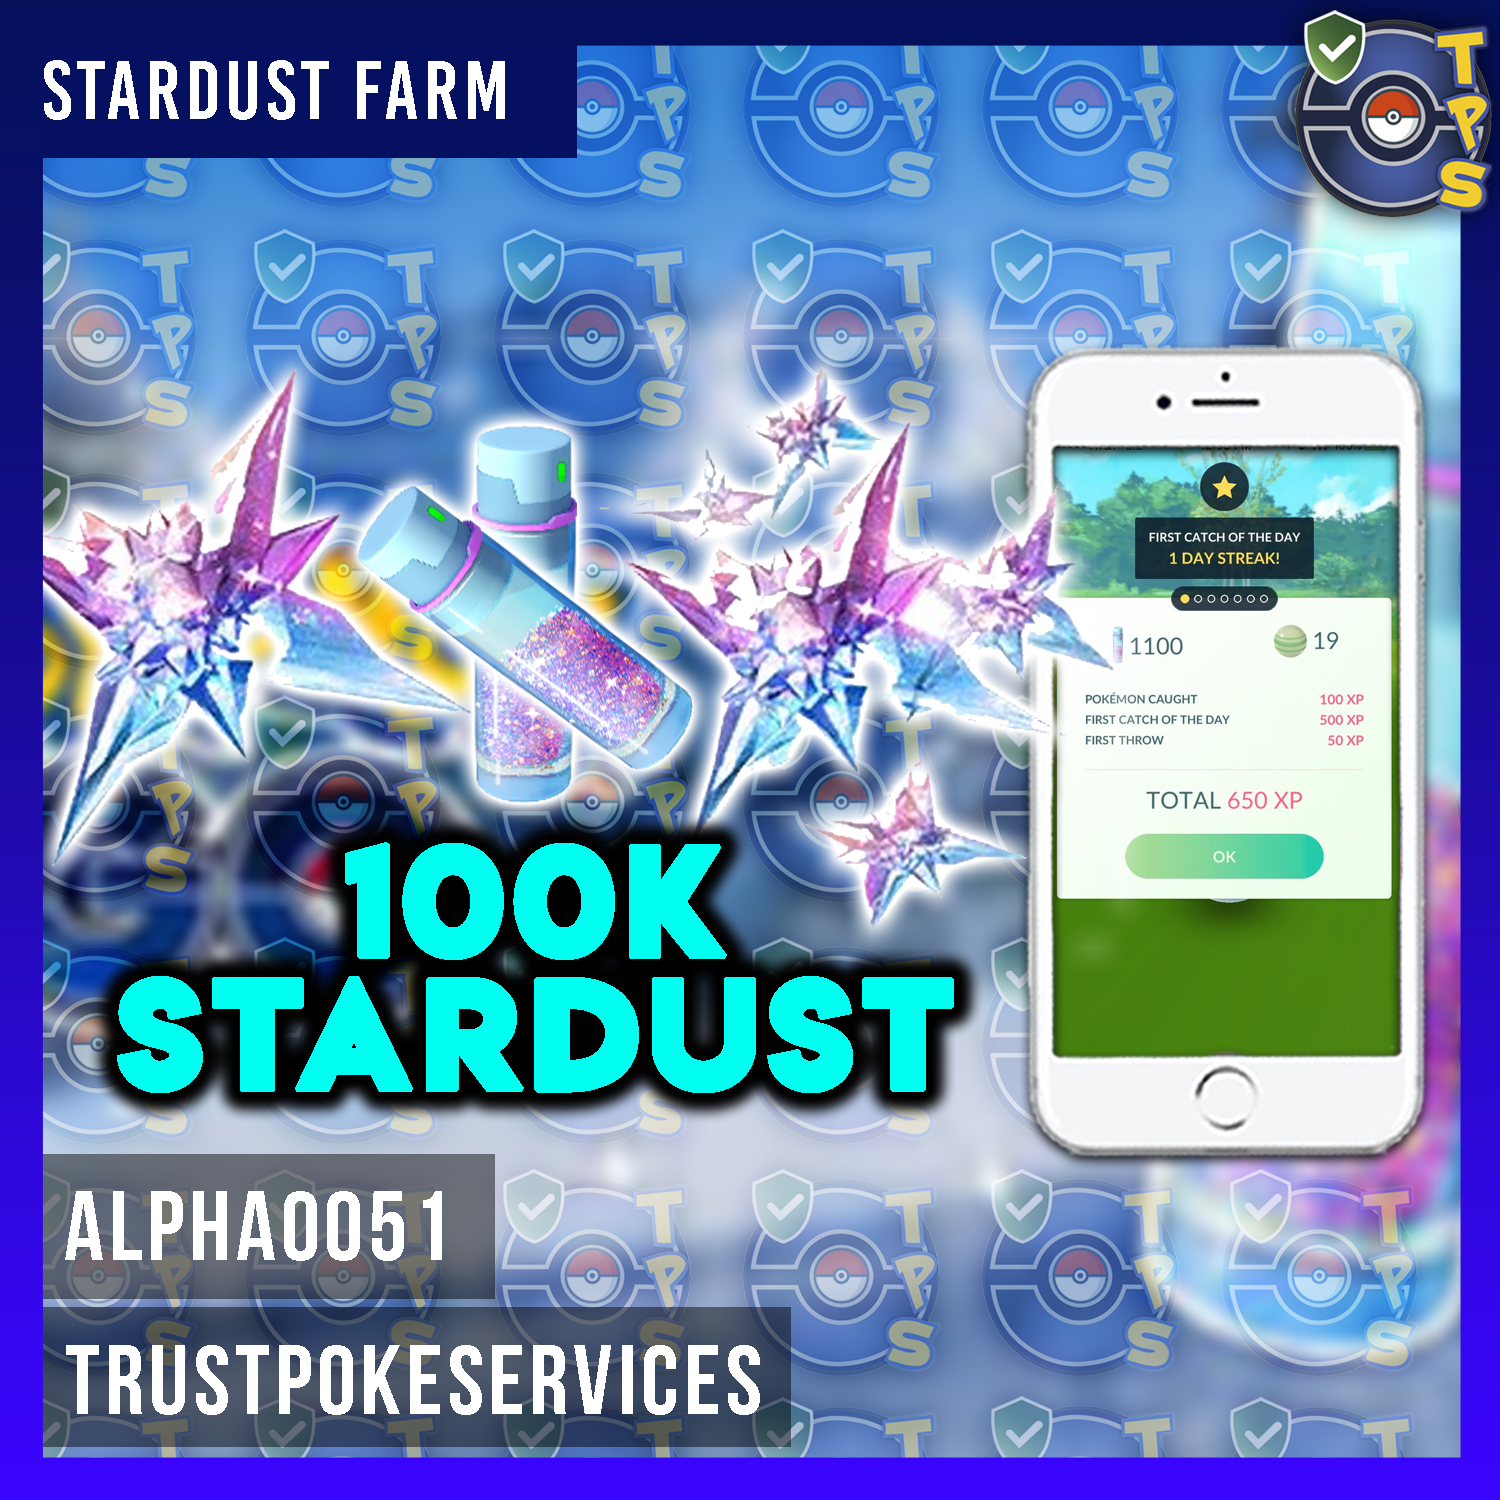 Pokemon Go 100,000 Stardust Farm 100% All Catches by Hand ...